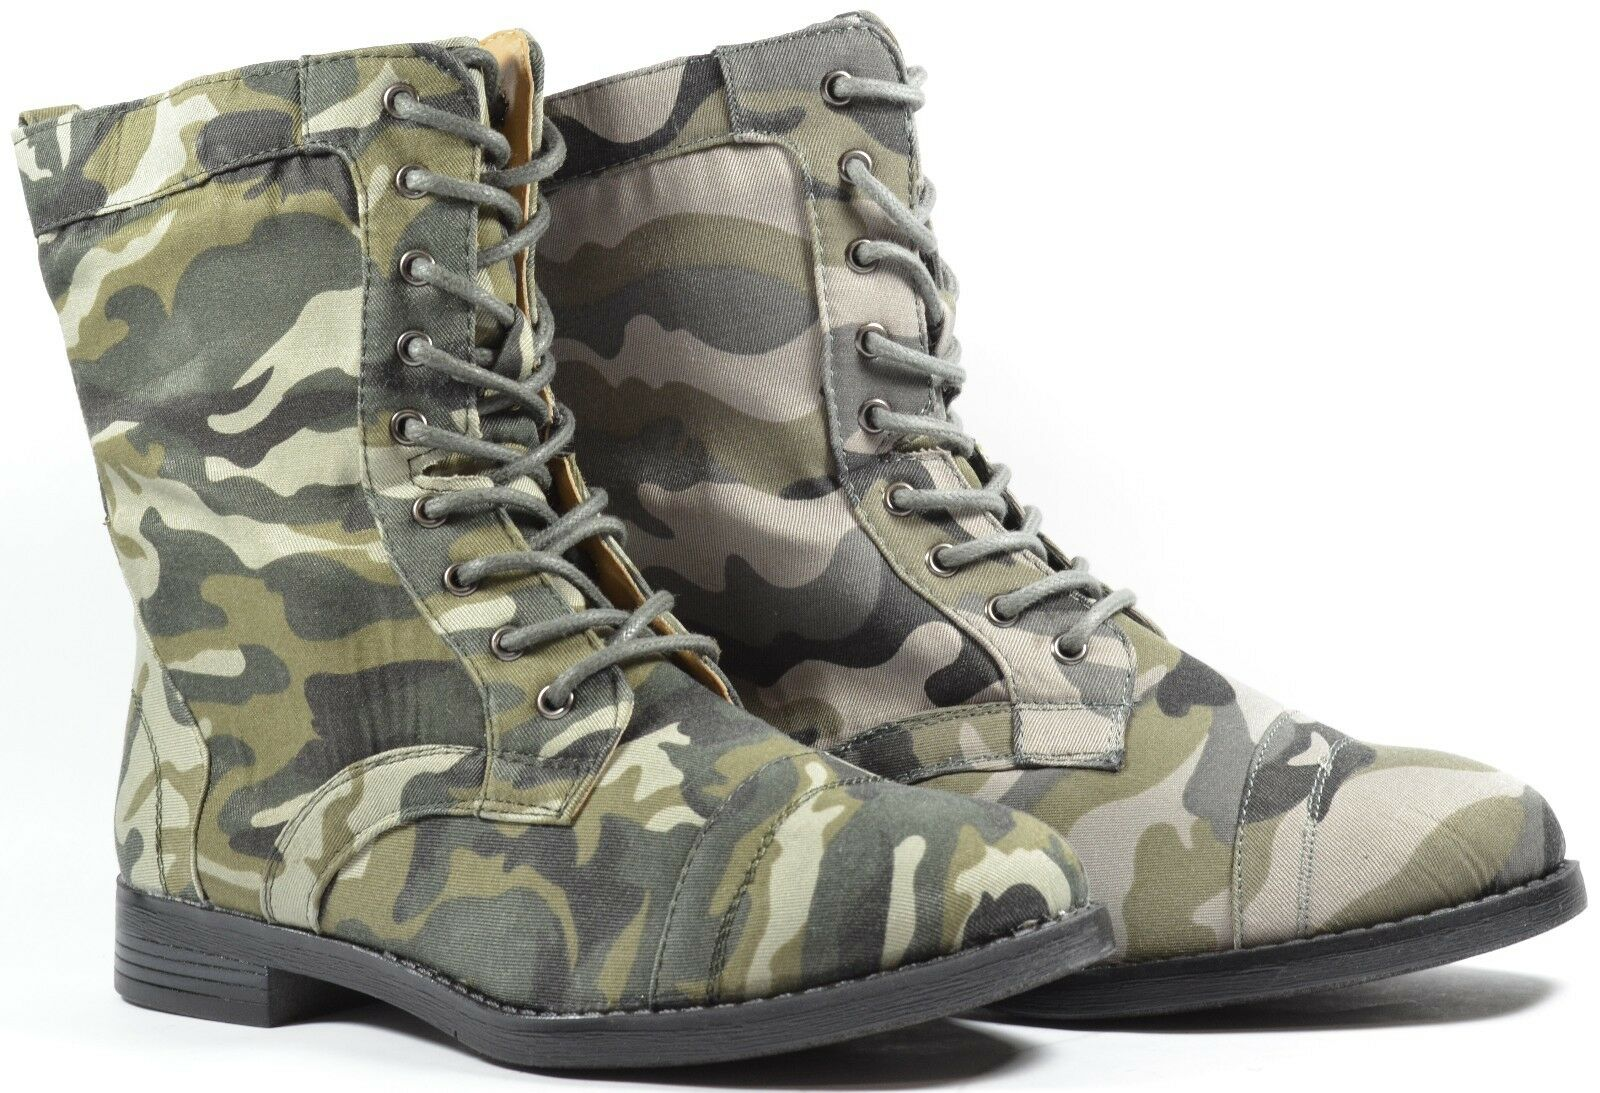 Women Fashion Combat Boots 2014 Style Side Zipper Design Green Gray Camouflage